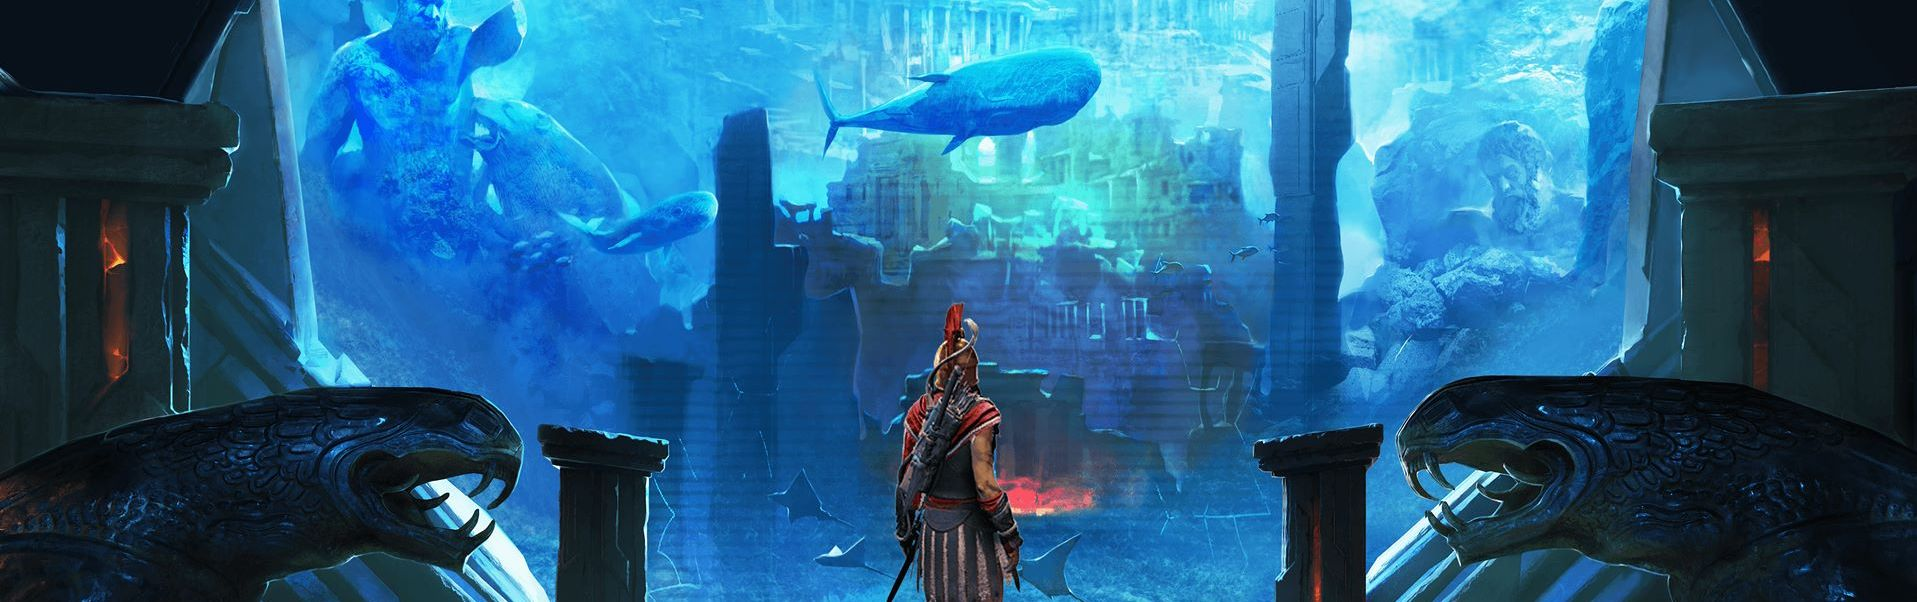 Assassin's Creed Odyssey - The Fate of Atlantis (DLC) Uplay Key UNITED STATES